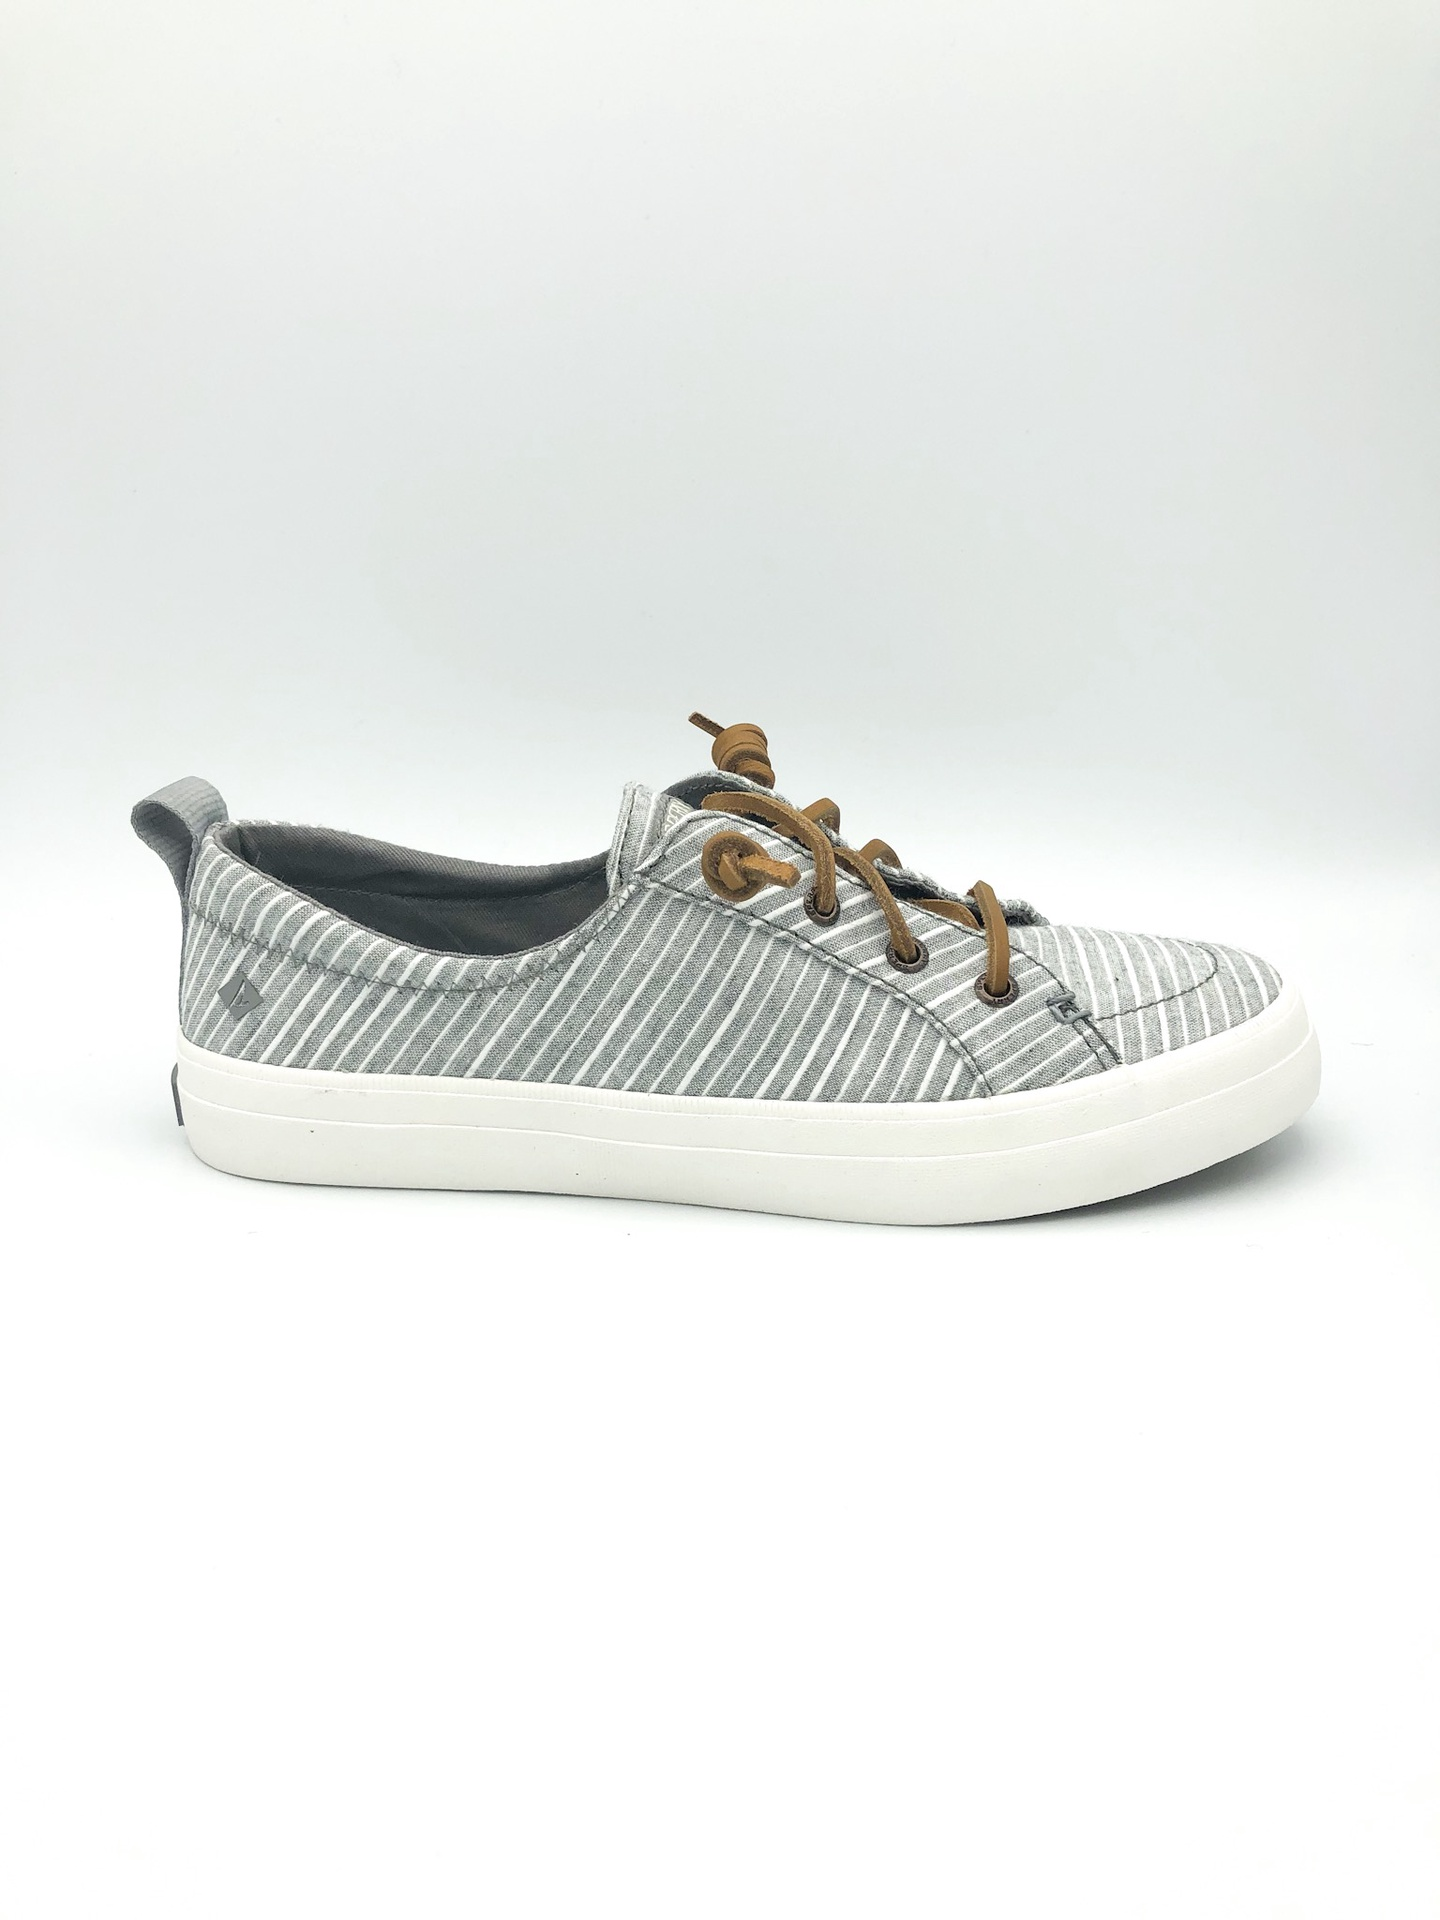 SPERRY - CREST VIBE WASHABLE SNEAKER IN GREY STRIPE